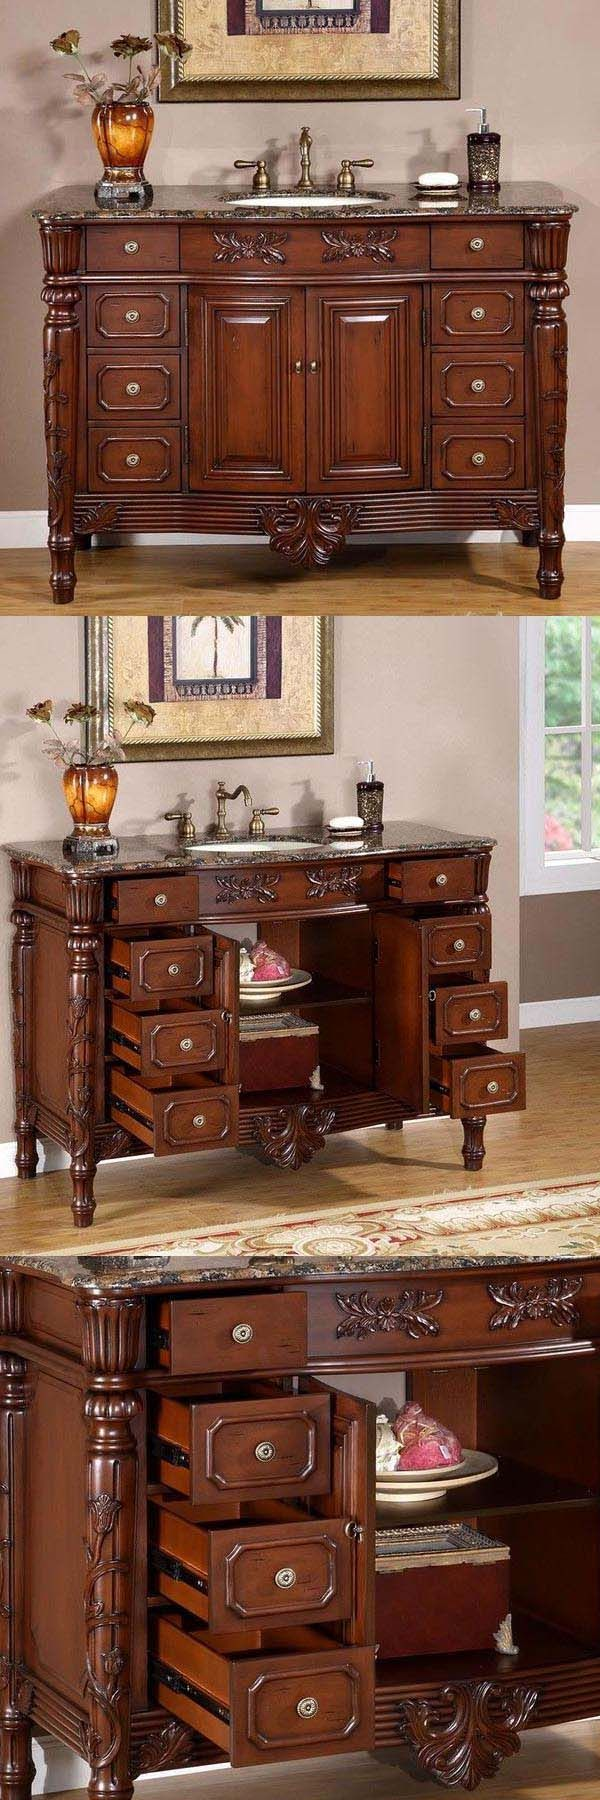 Bathroom vanities ideas with double sink u single sinks that are